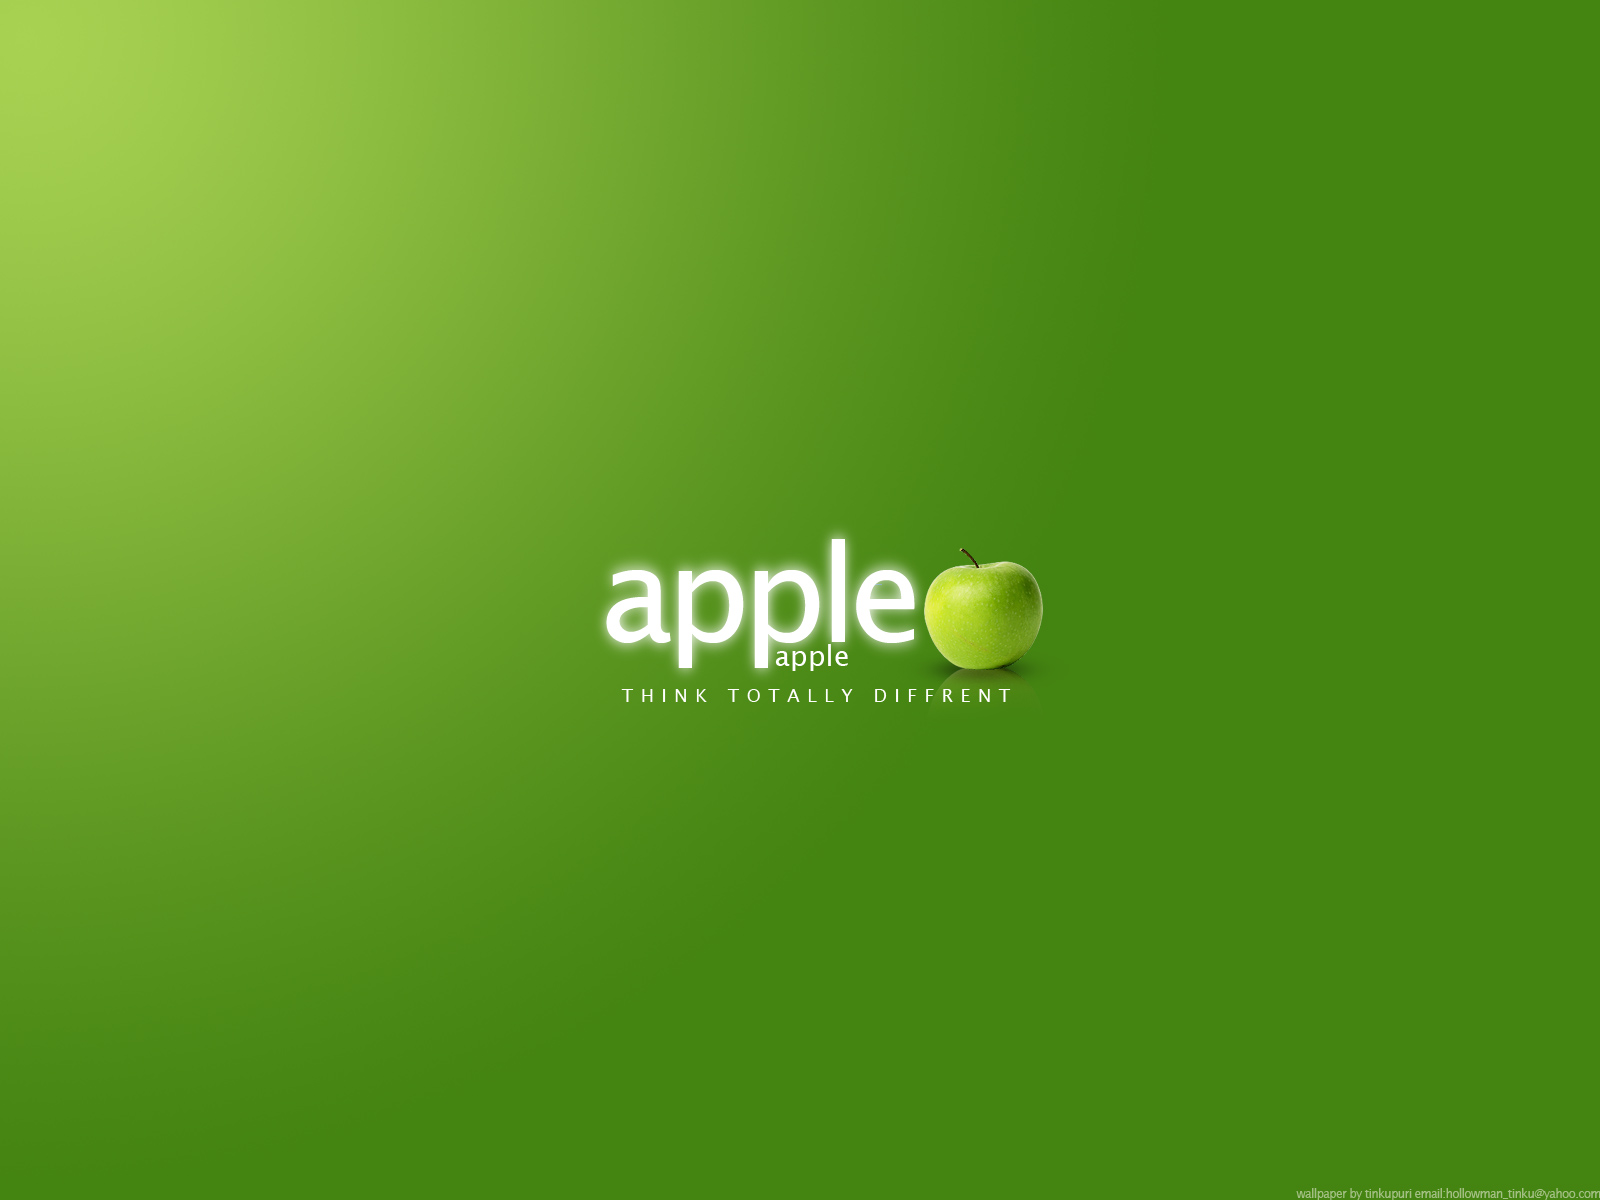 Lion Hd Wallpapers For Iphone Green Apple Logo Wallpapers Green Apple Logo Stock Photos